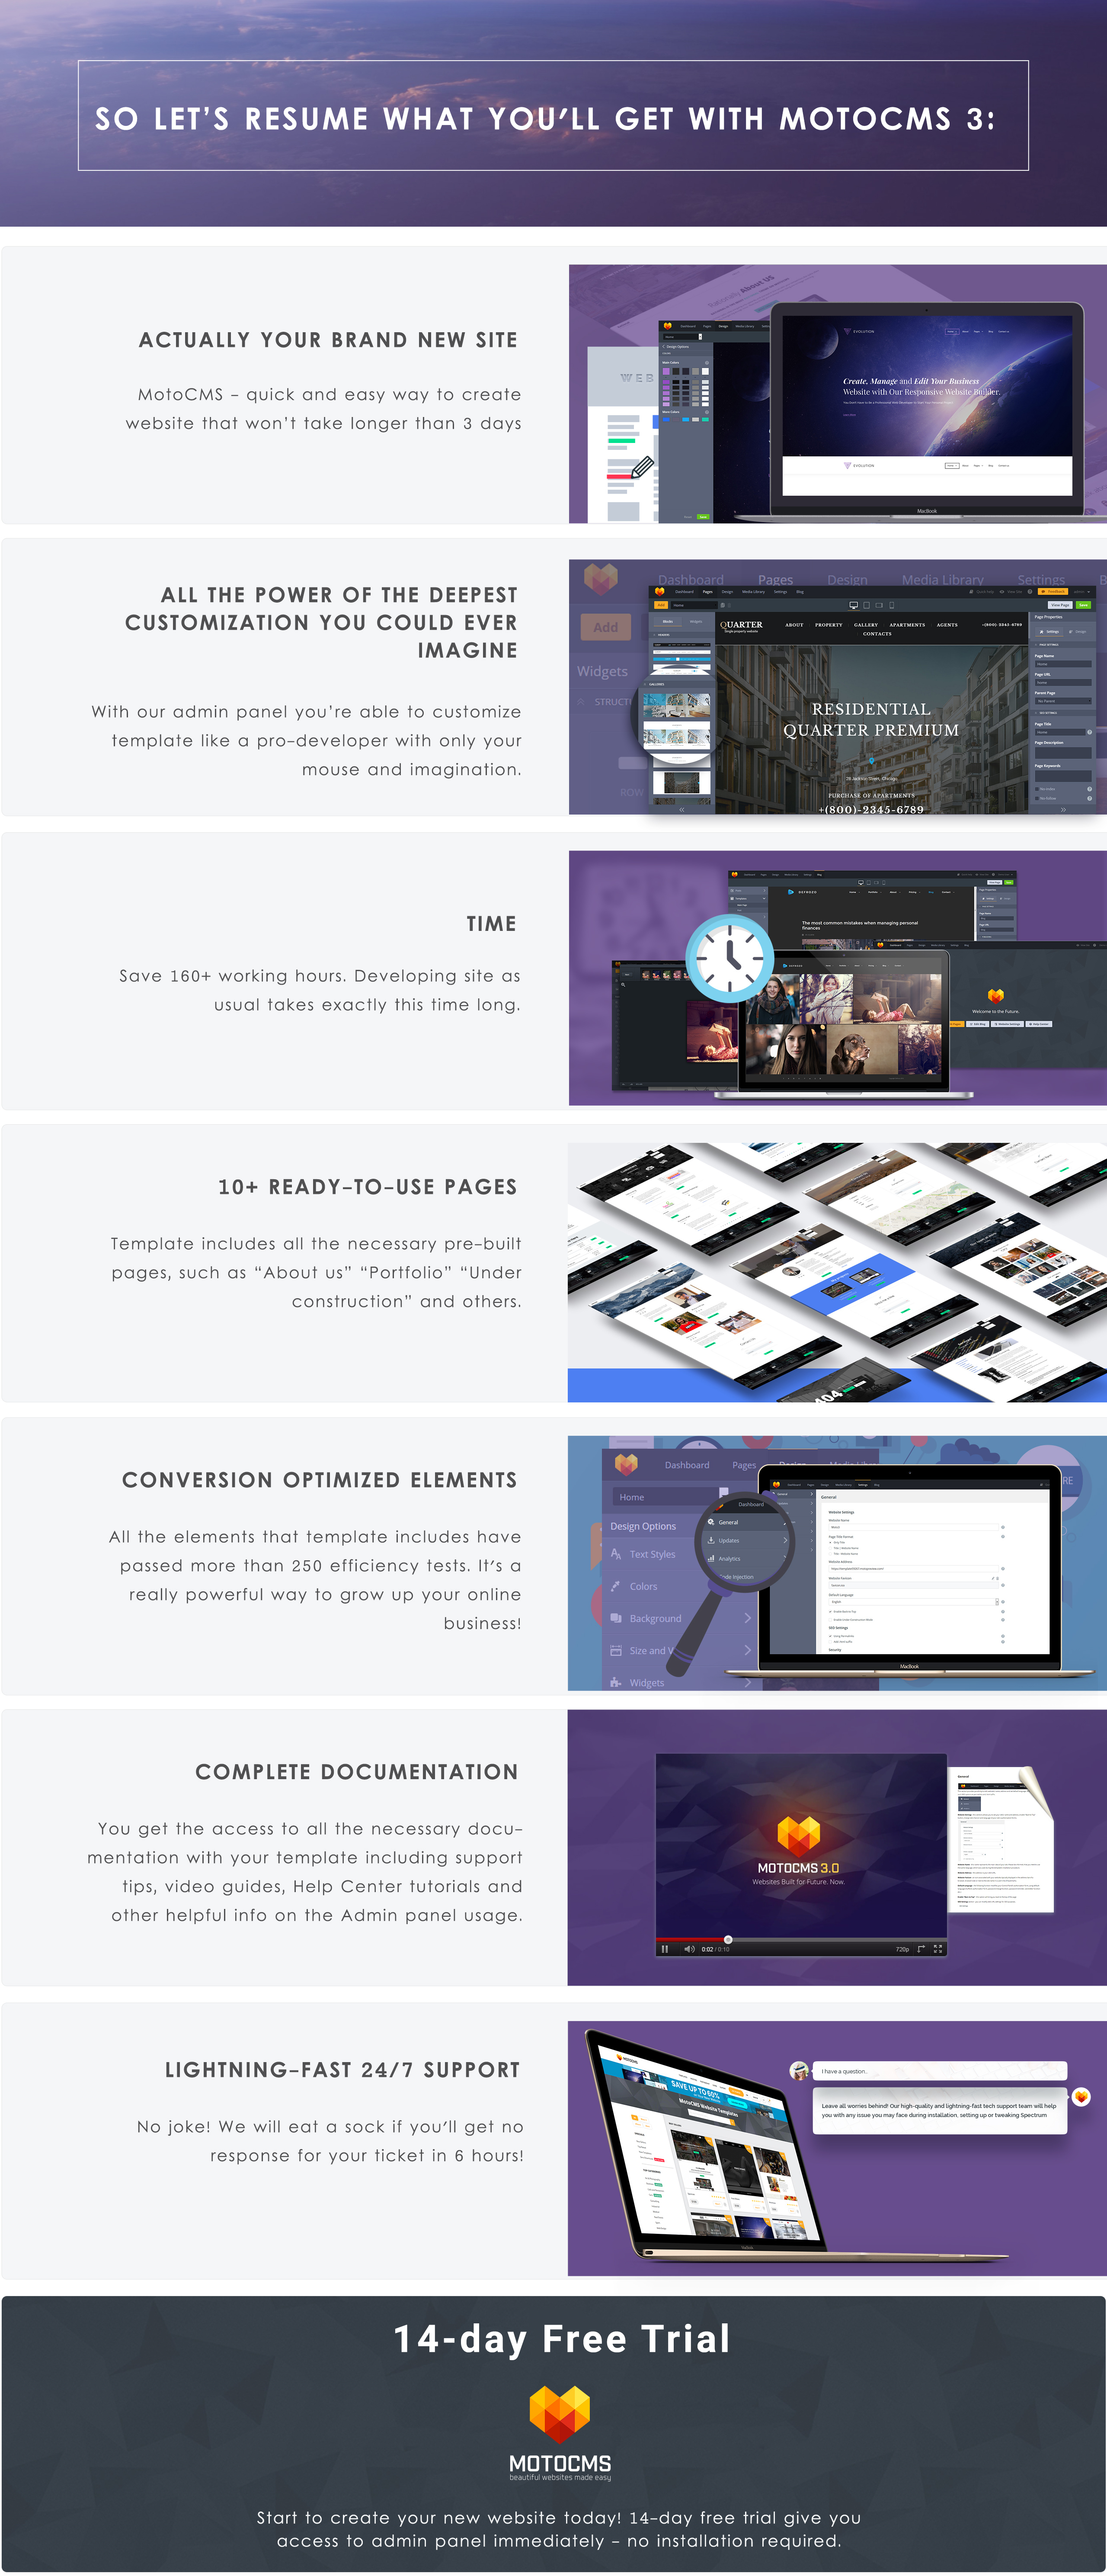 NextPack - Delivery Services Moto CMS 3 Template